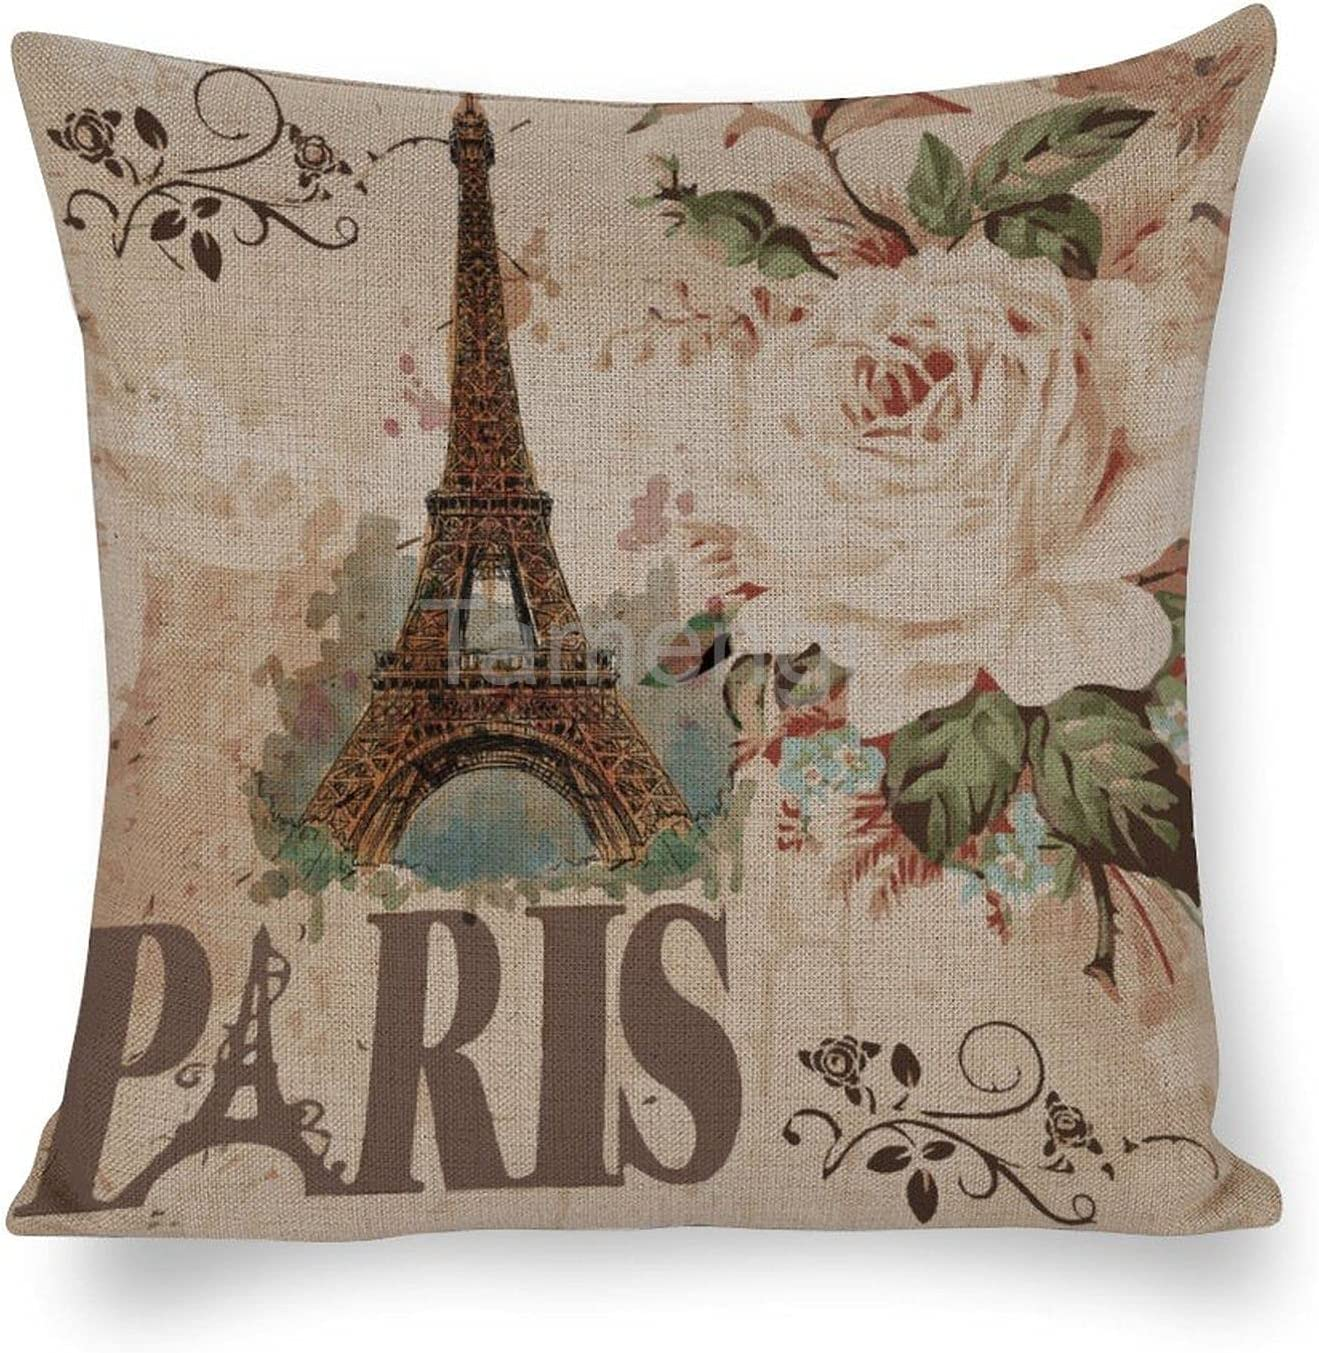 Throw Pillow Cover Max 67% OFF of fixed price 63% OFF Decorative Pillowcase Eiffel Paris Vintage Fl